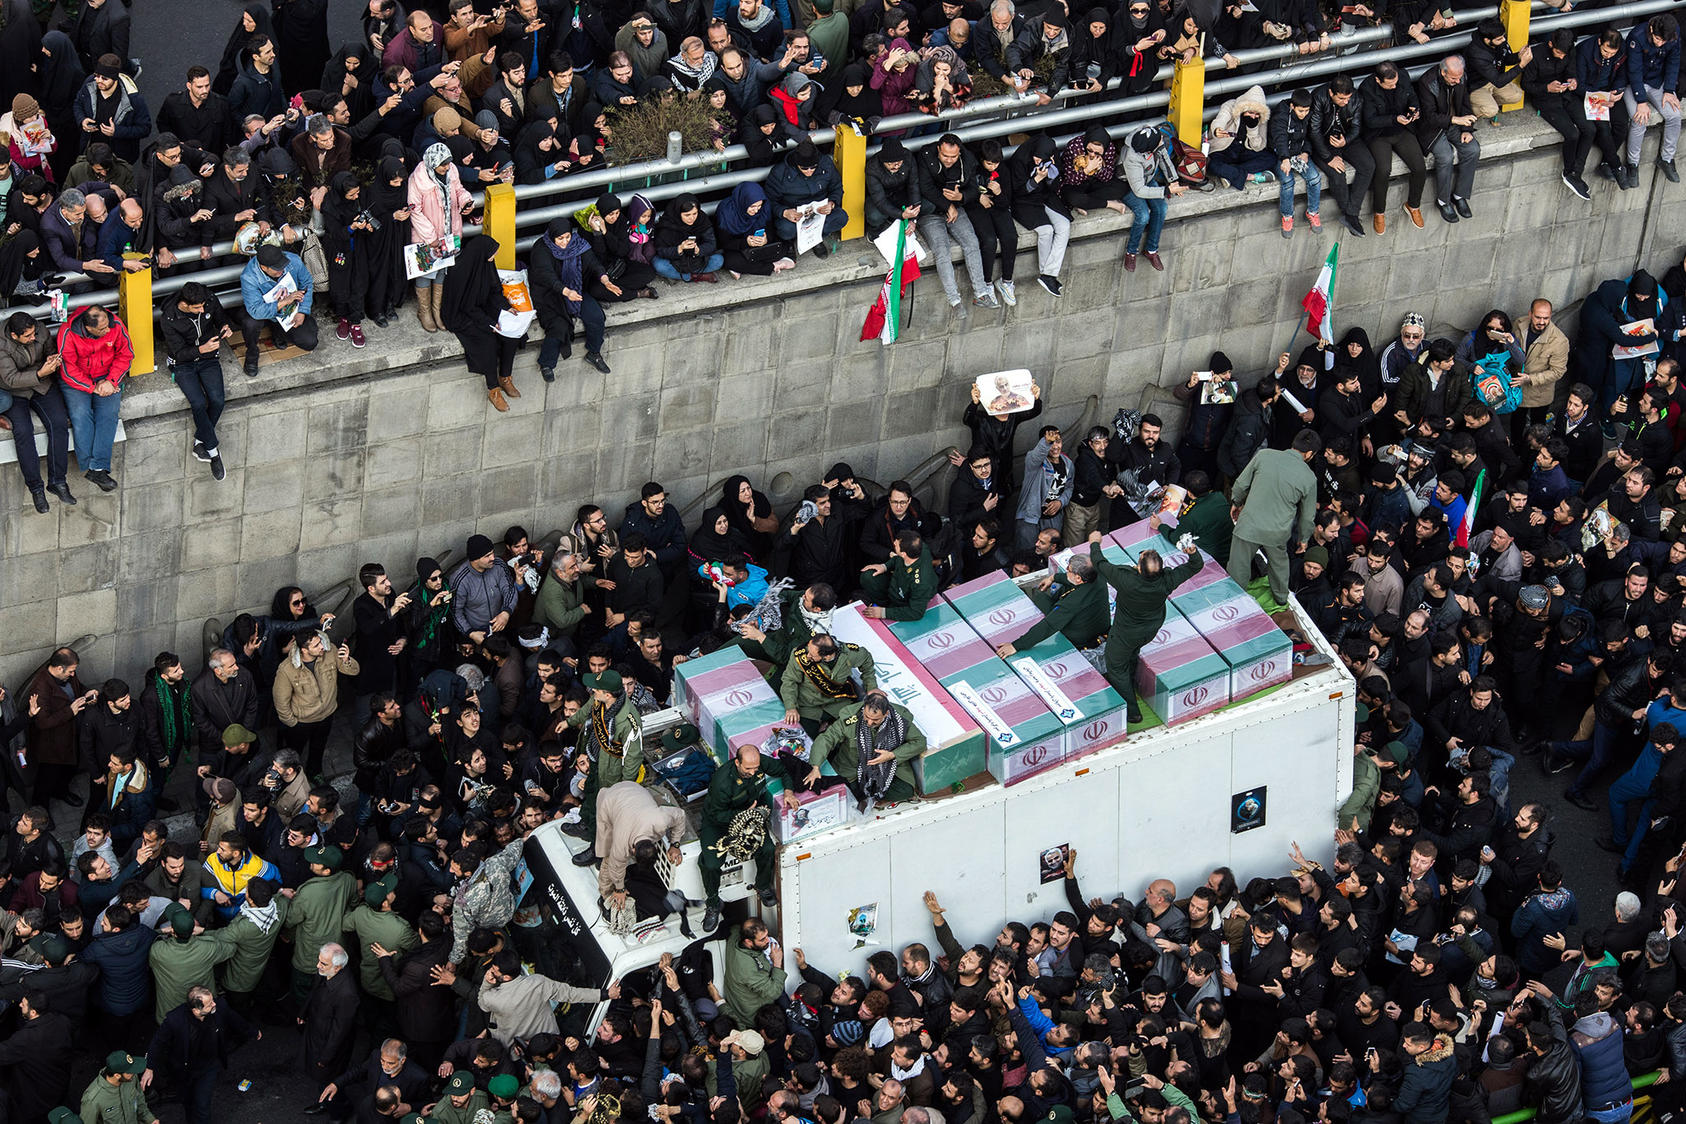 The coffins of Maj. Gen. Qassem Soleimani and others are carried on a truck through Tehran during a funeral procession on Monday, Jan. 6, 2019. (Arash Khamooshi/The New York Times)